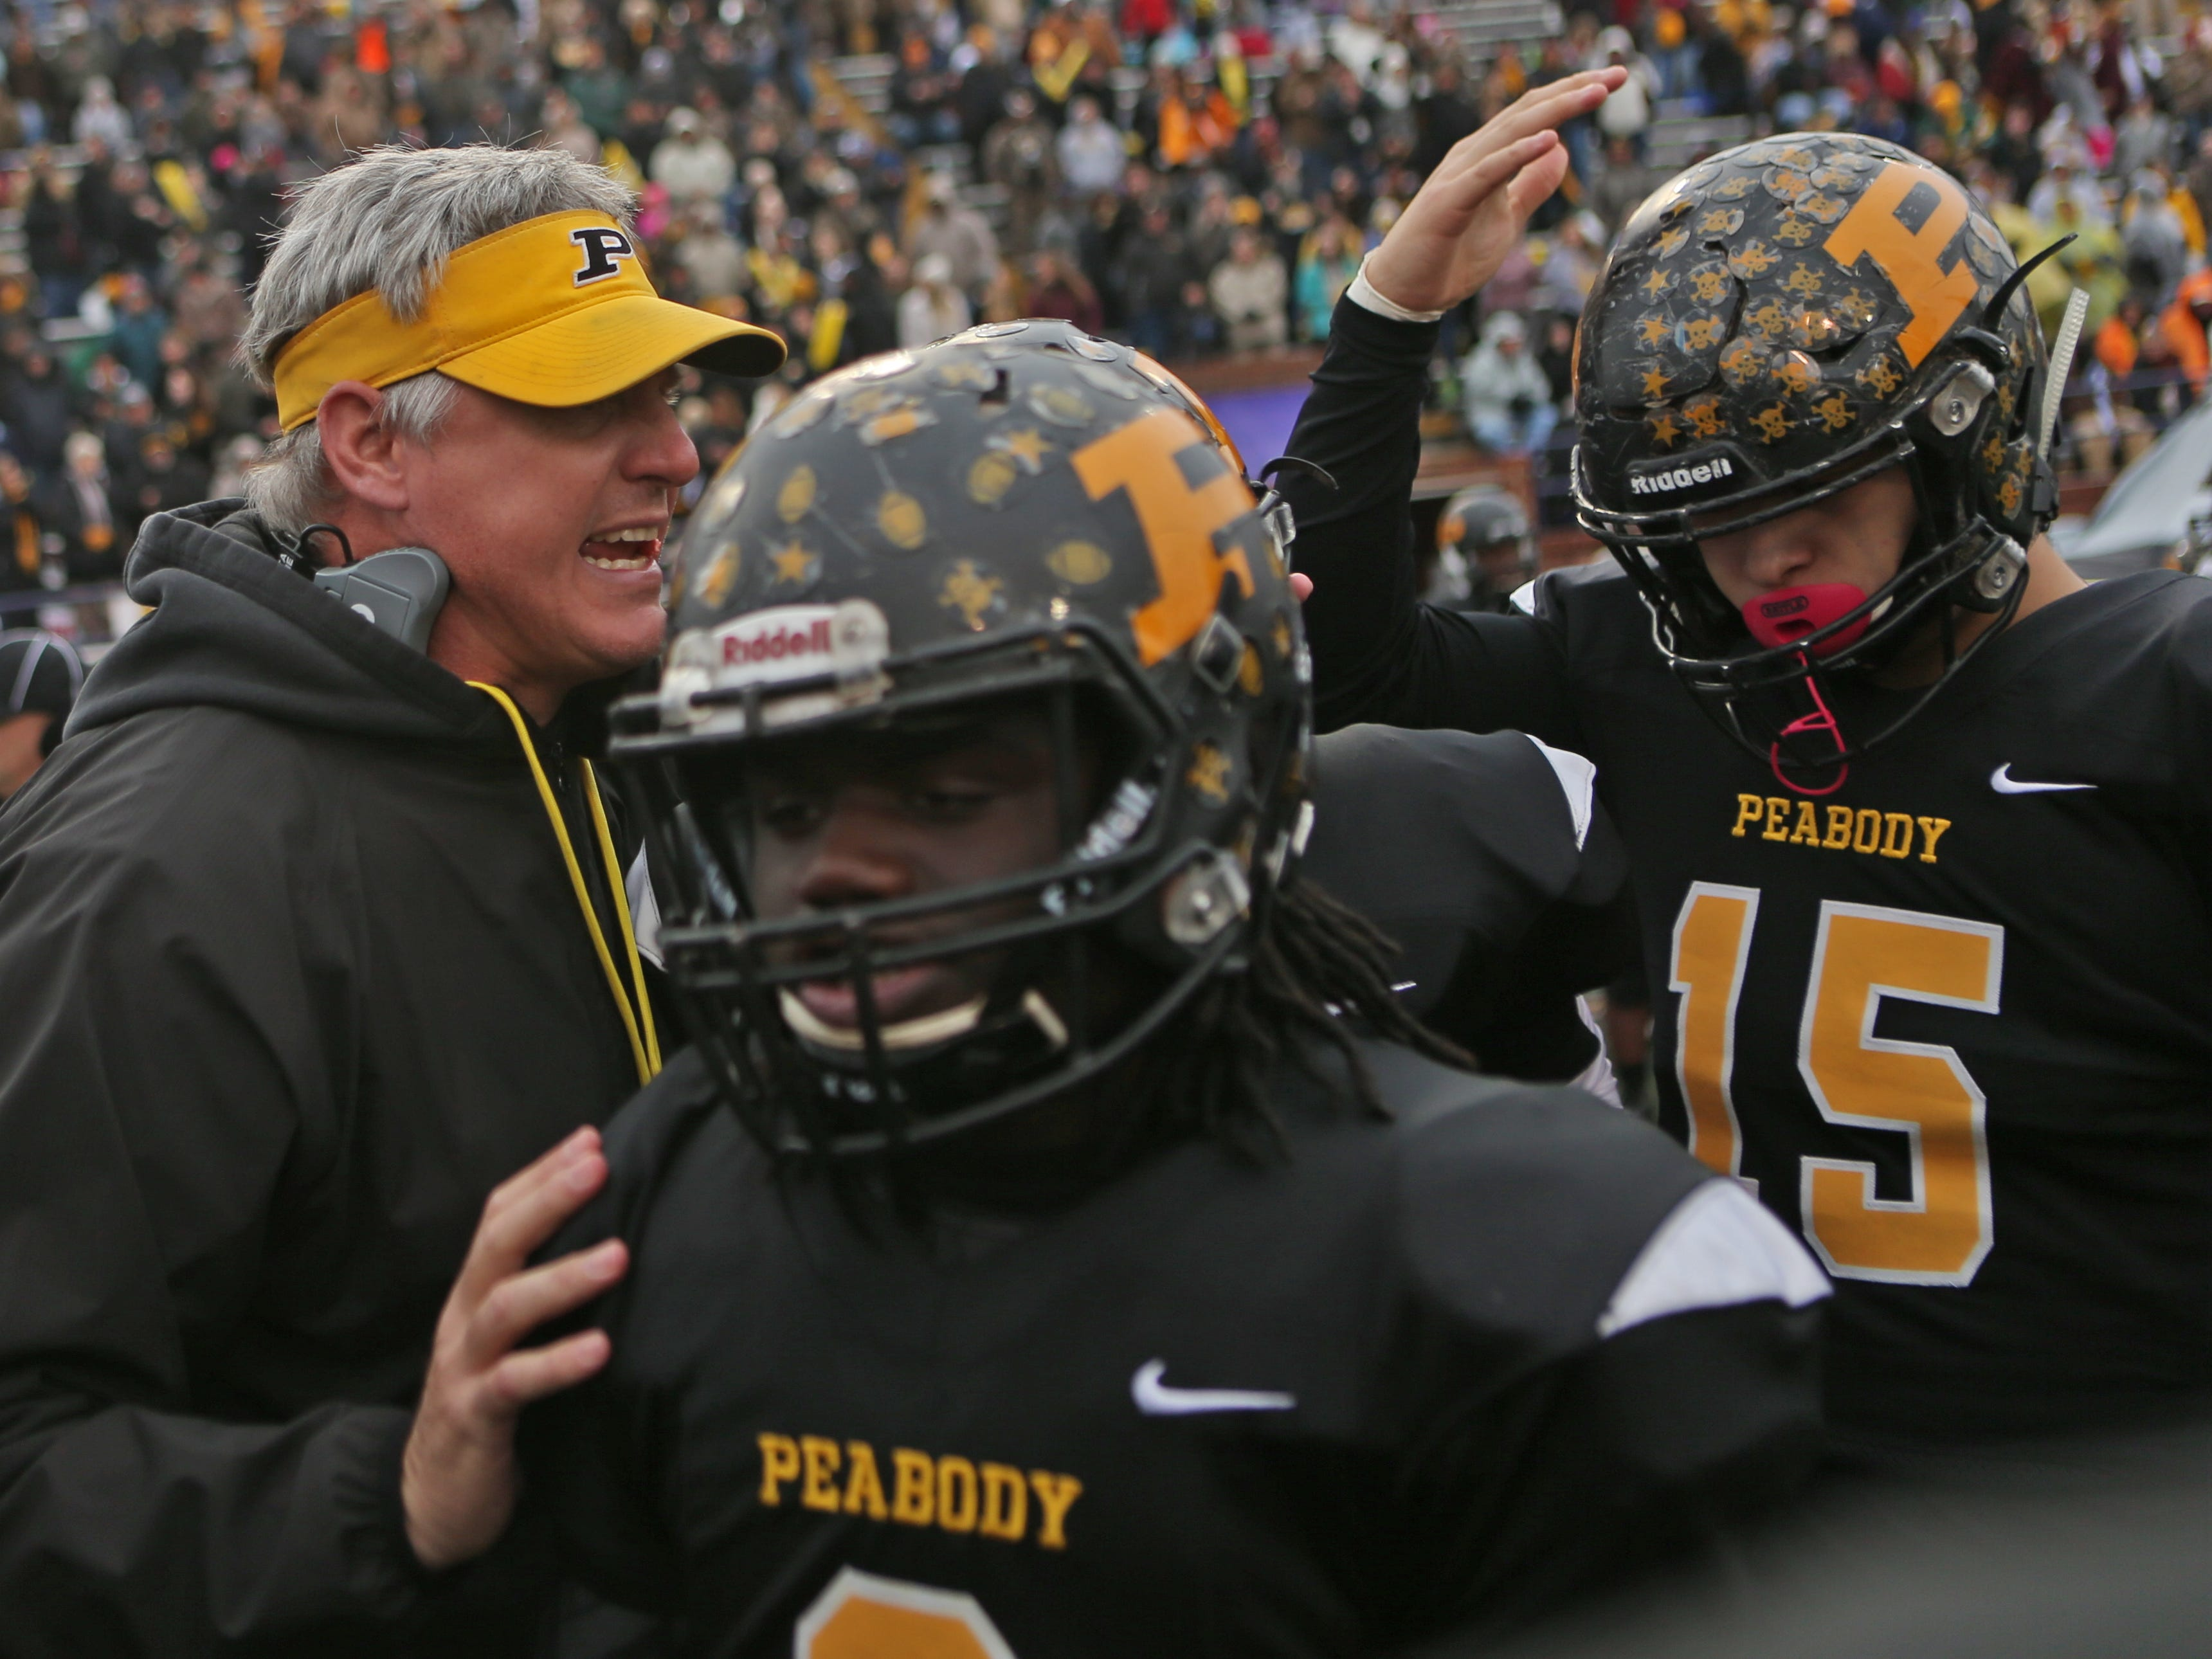 Peabody defensive coordinator Tab Vowell talks to his players at the Class 2A BlueCross Bowl state championship at Tennessee Tech's Tucker Stadium in Cookeville, Tenn., on Thursday, Nov. 29, 2018.